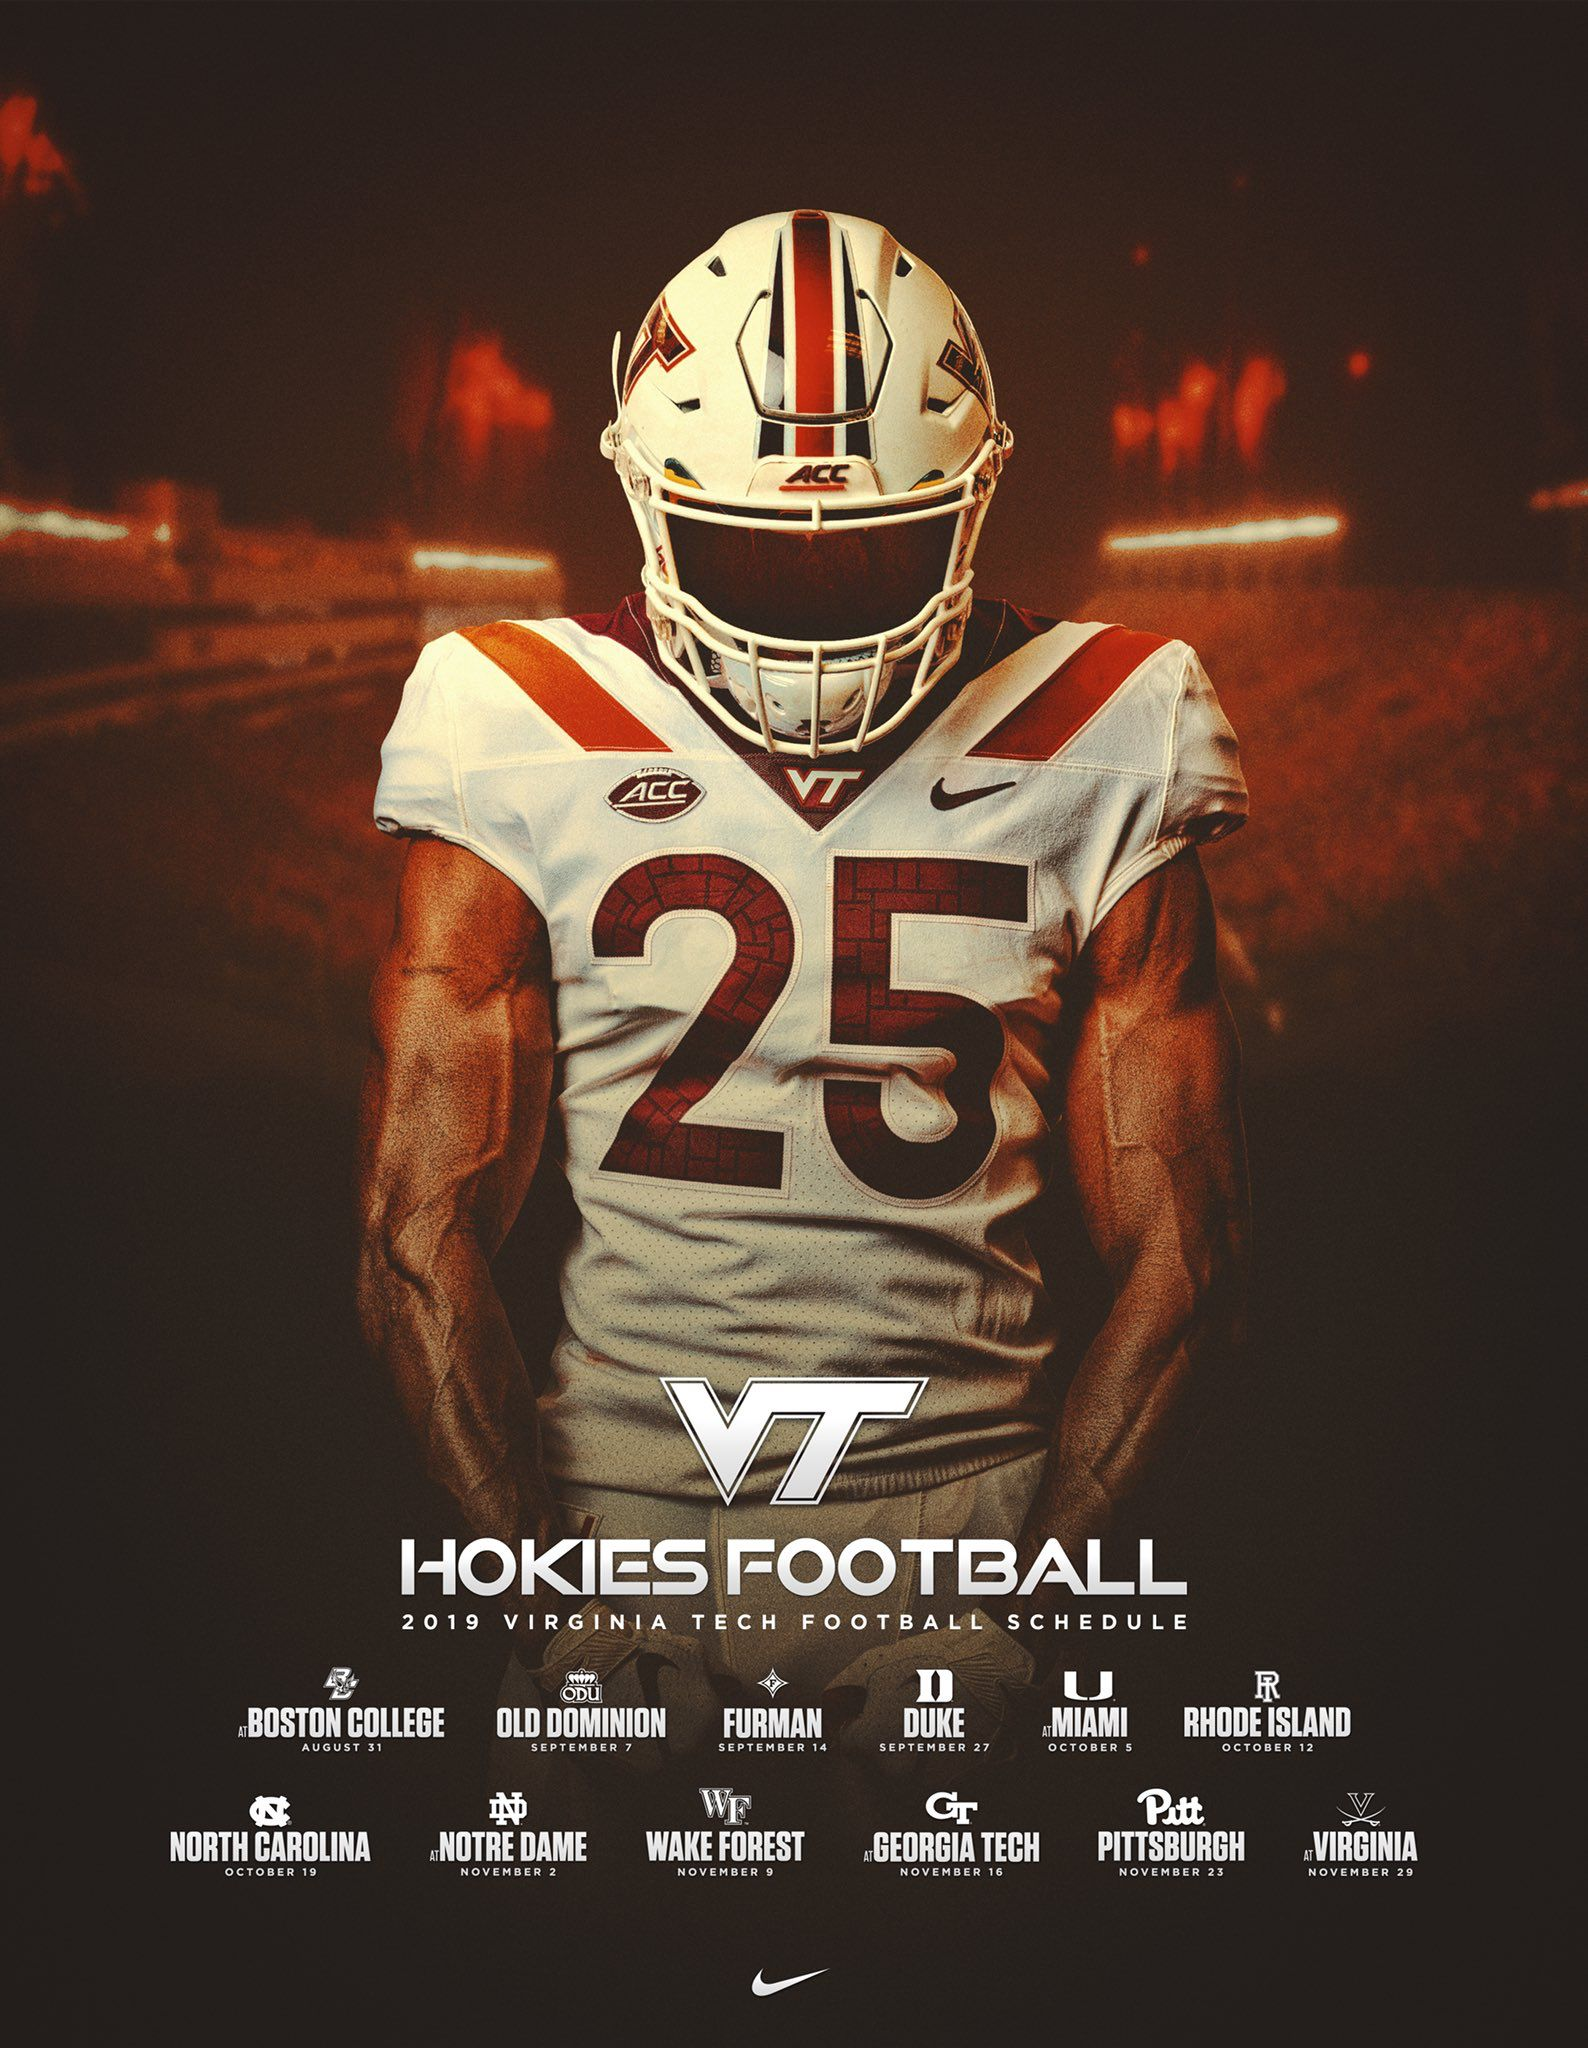 Pin By Josh Neuhart On Sposters Hokies Football Hokies Virginia Tech Football